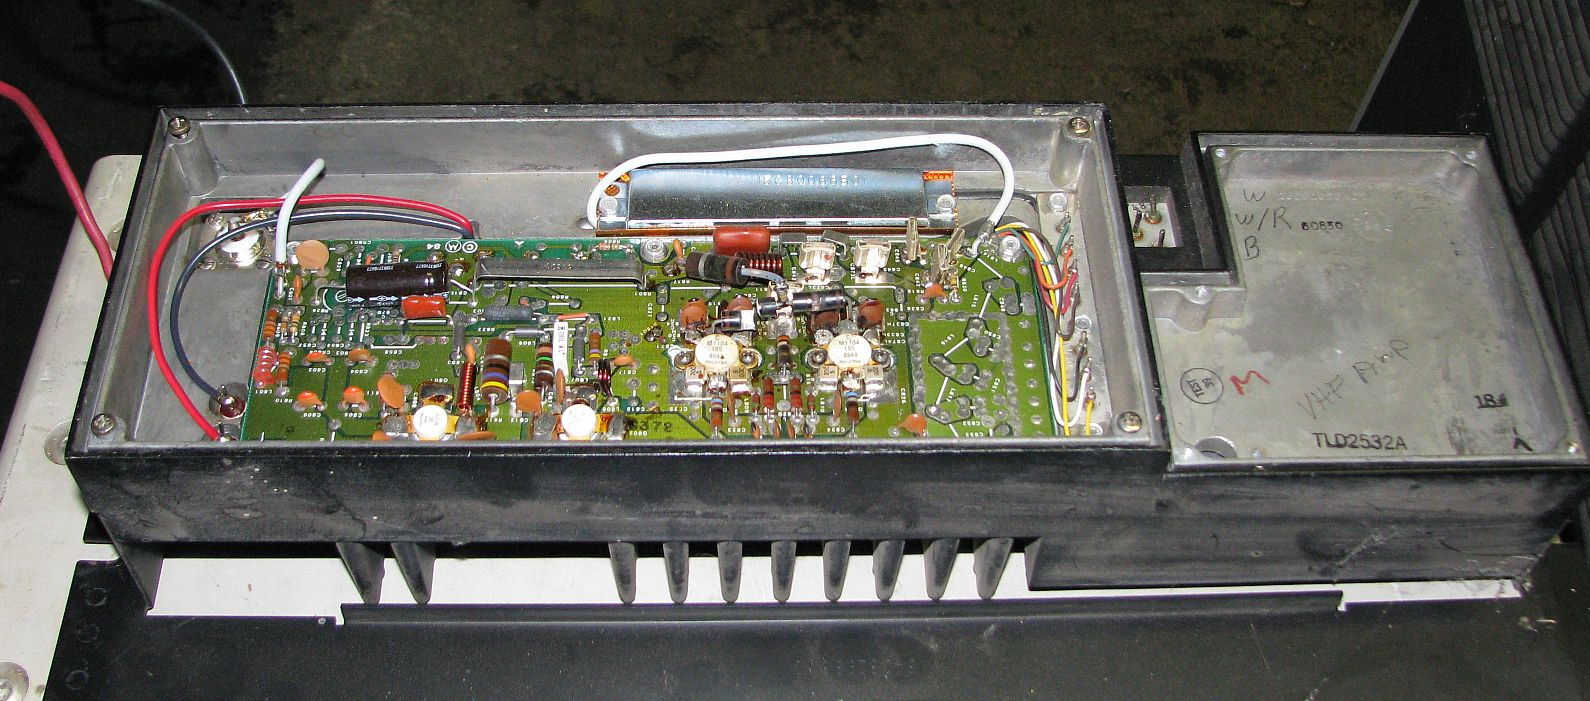 K6bj Uhf Msf5000 Vhf Amplifier With 30 Watts Power Amp